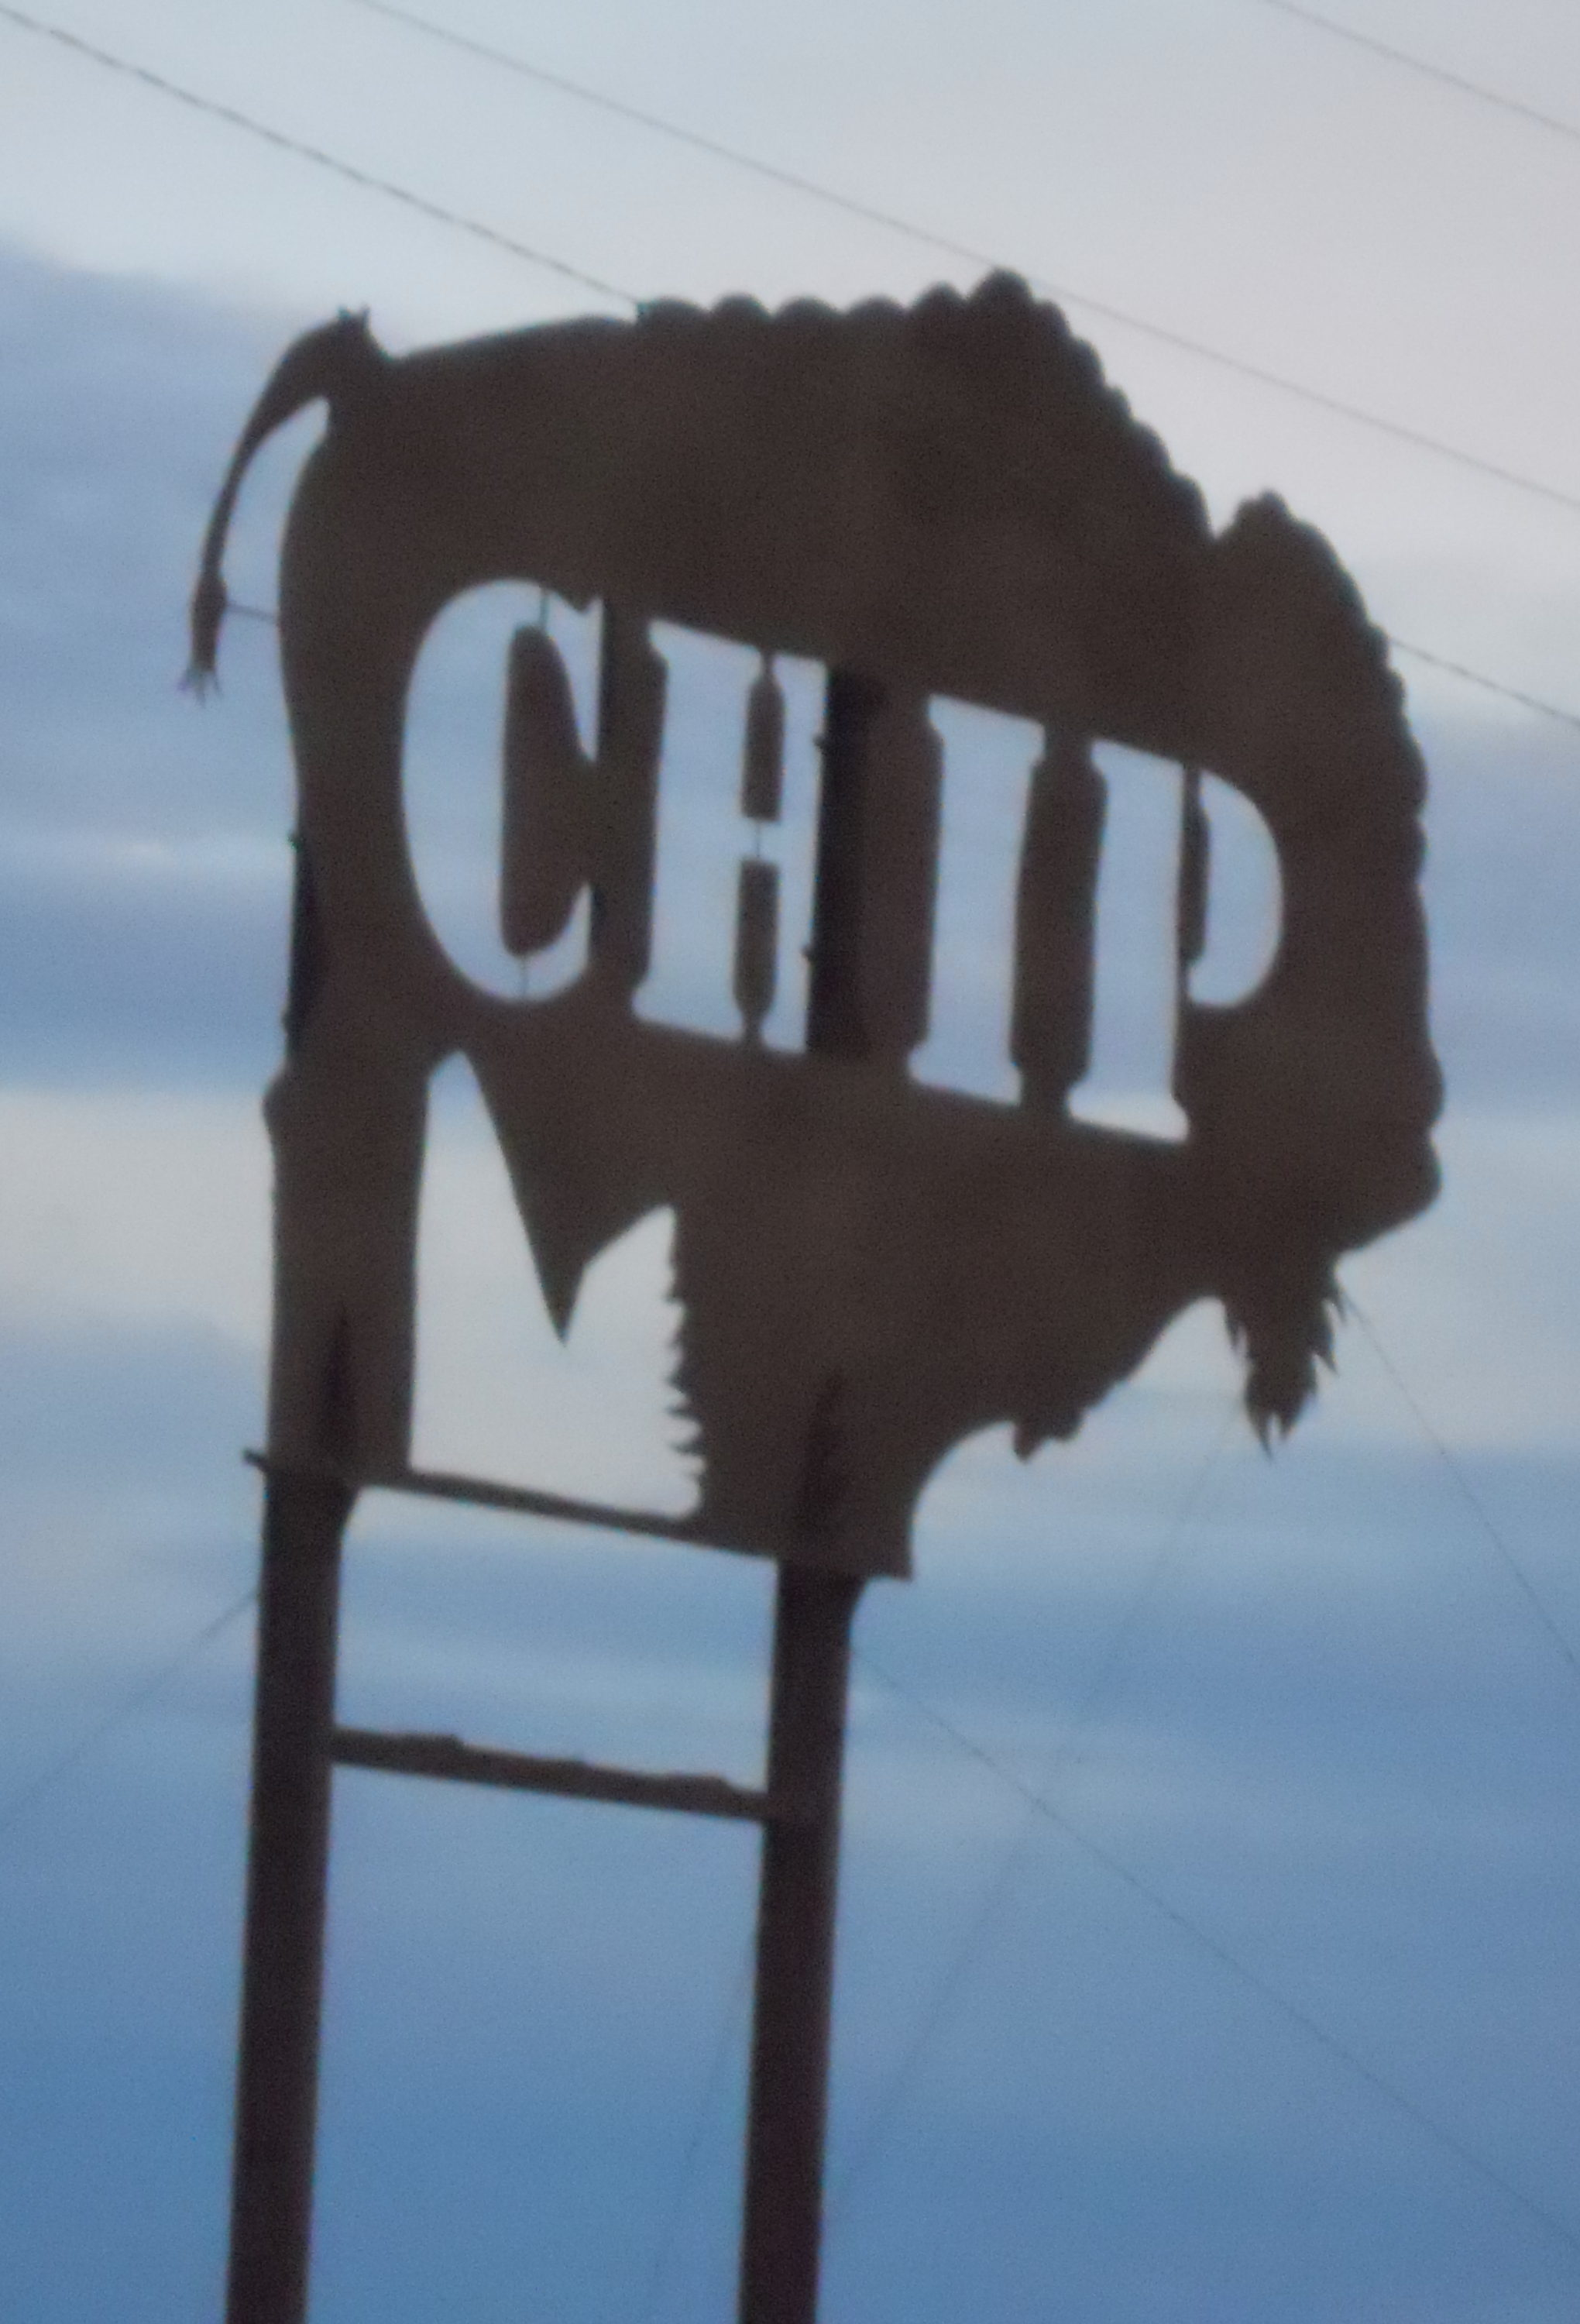 Buffalo Chip, Sturgis, North Dakota. Metal signon post